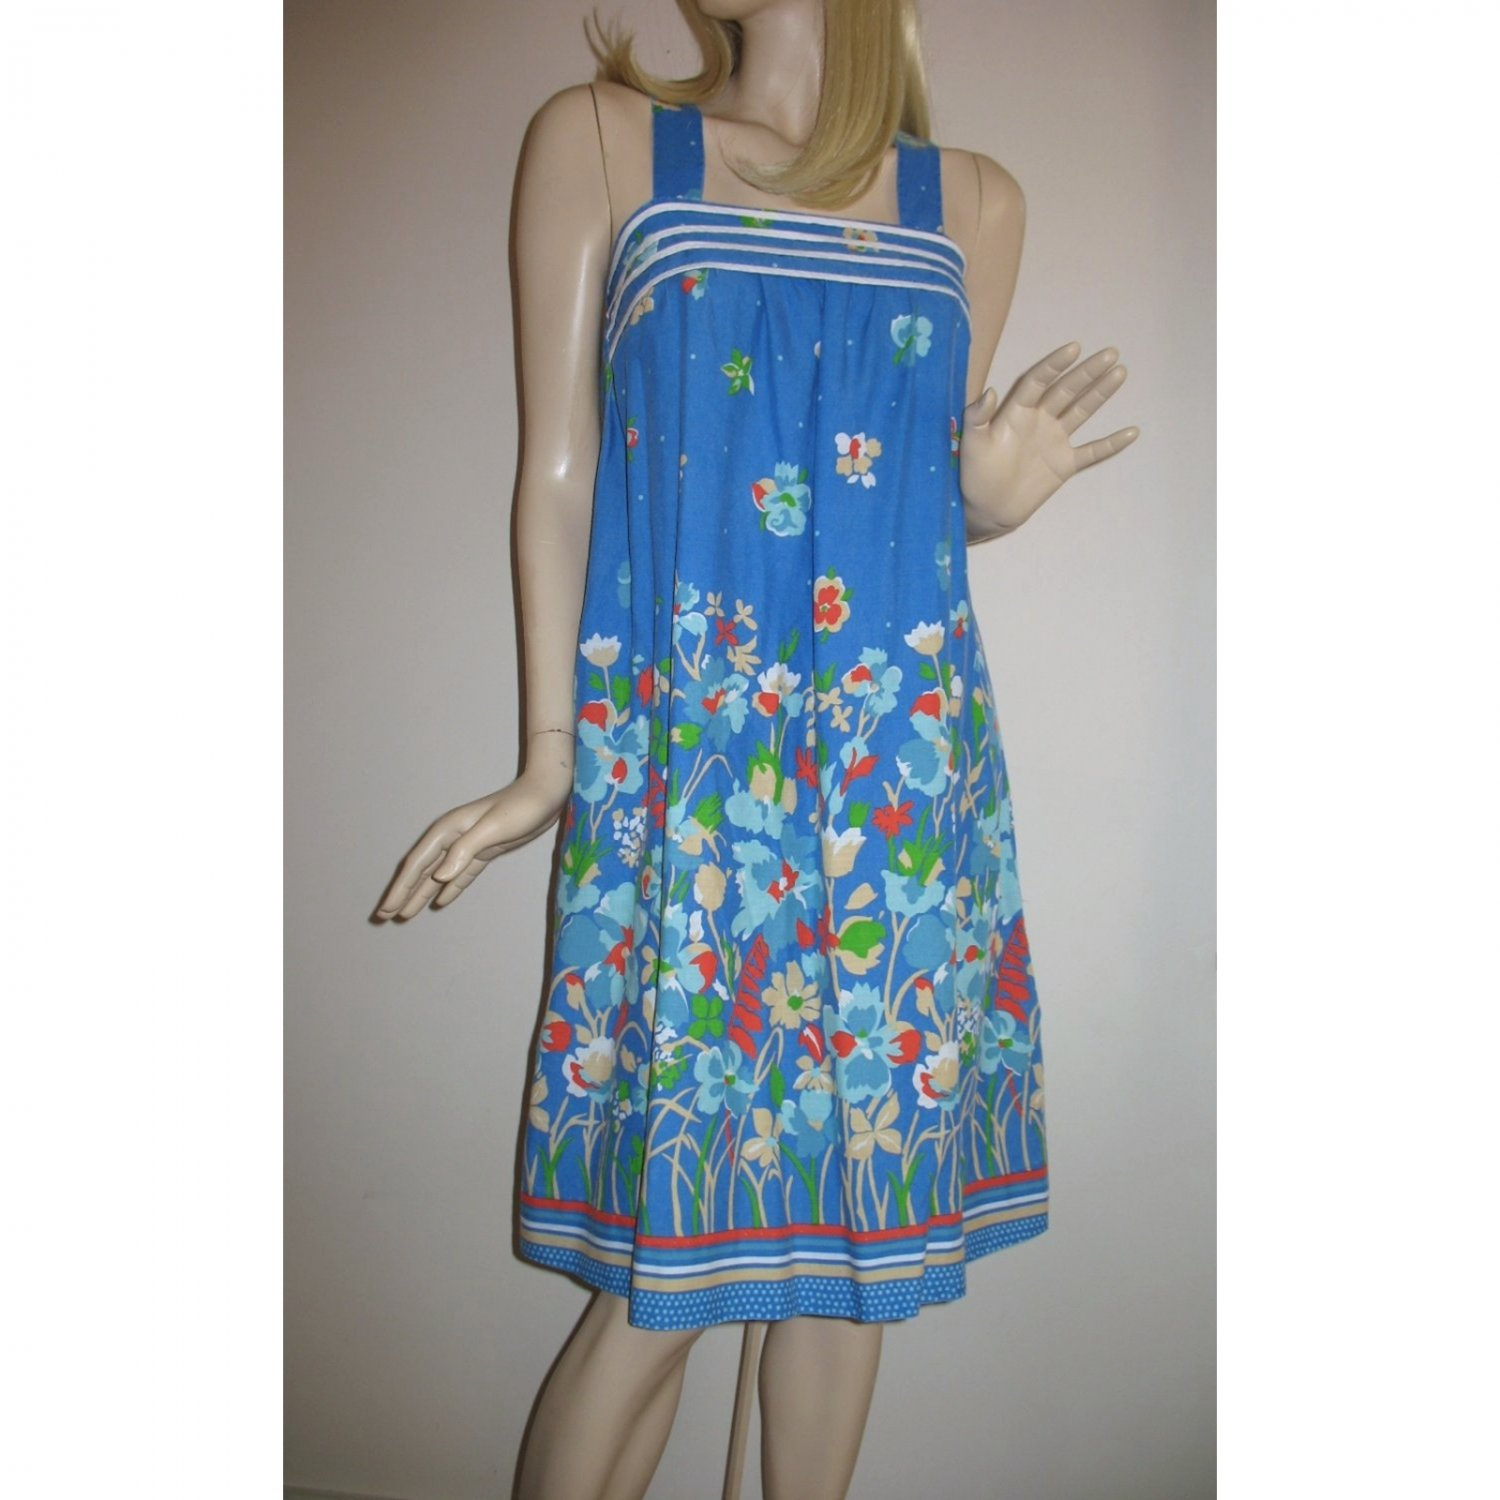 Vintage 60s Sundress / Tent Dress / Resort Wear Casual Style Dress - Size S/Small